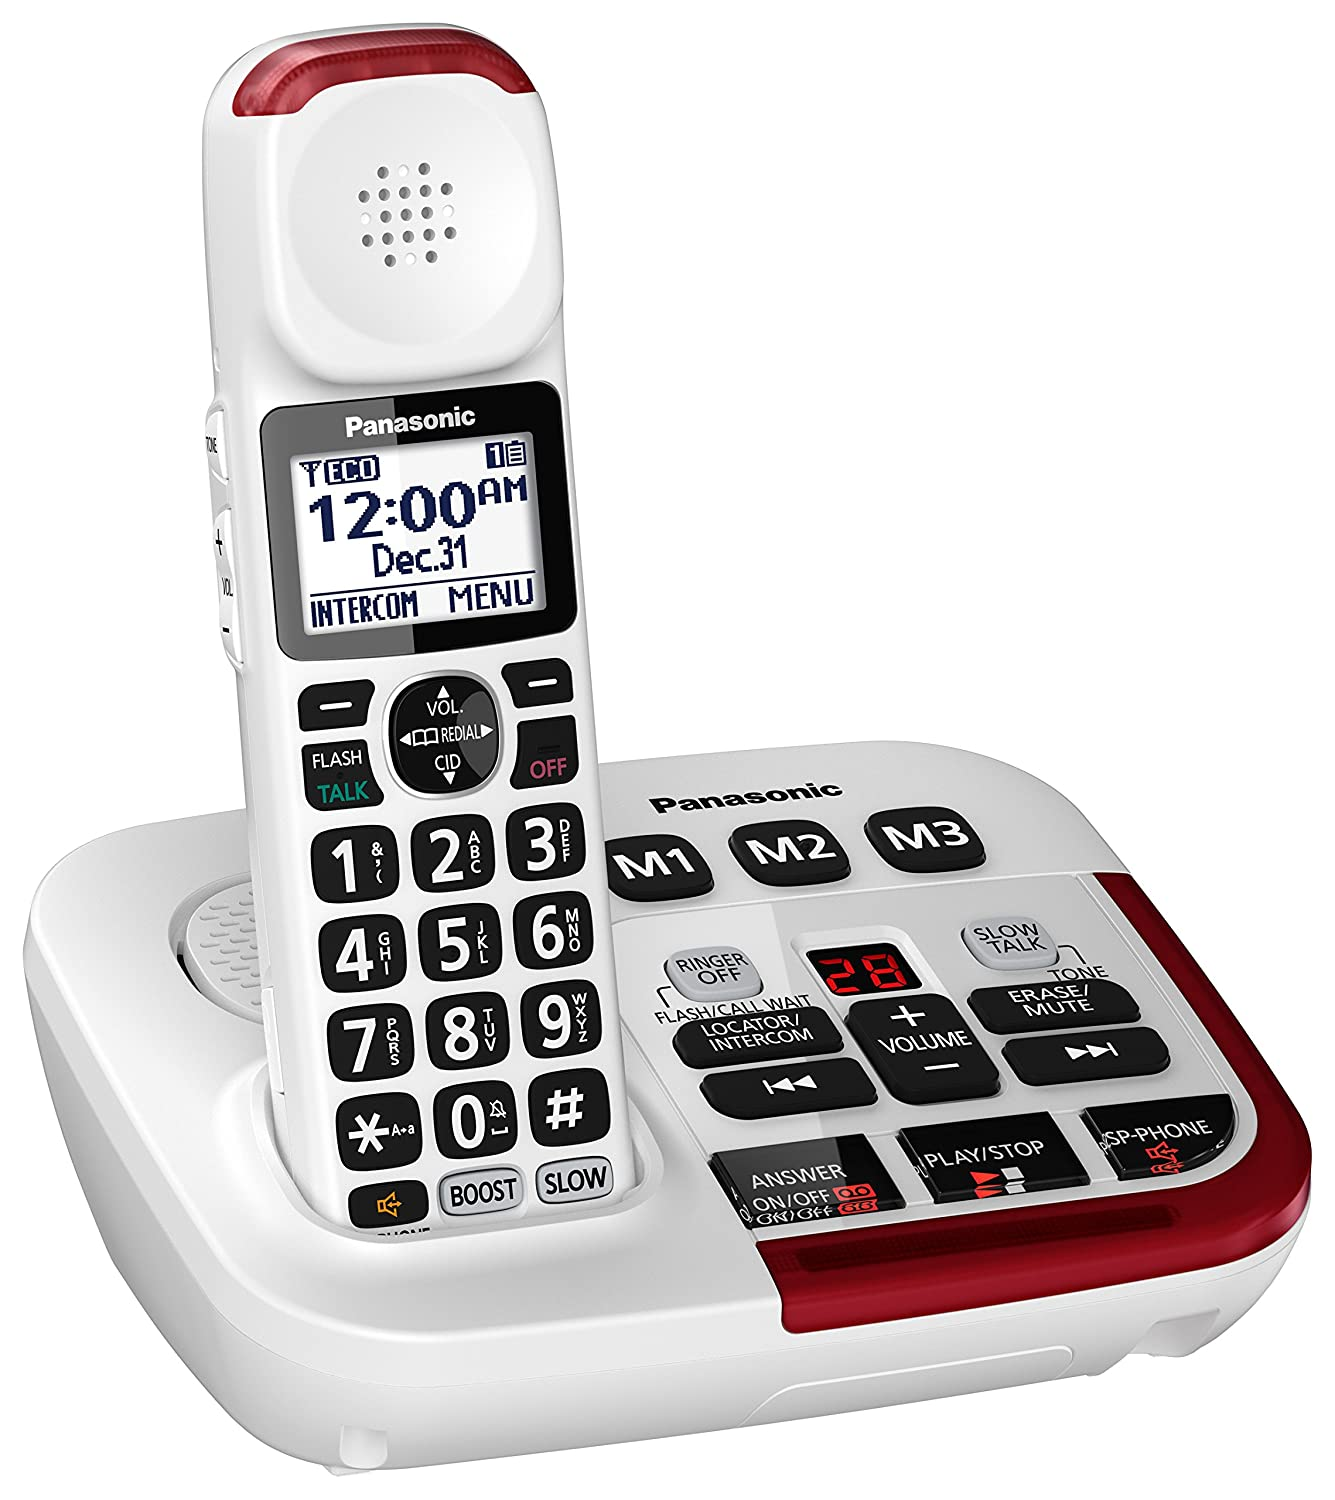 67a36ab85 Amazon.com  Panasonic Amplified Cordless Phone KX-TGM420W with Enhanced  Noise Reduction and Digital Answering Machine - 1 Handset (White)   Electronics